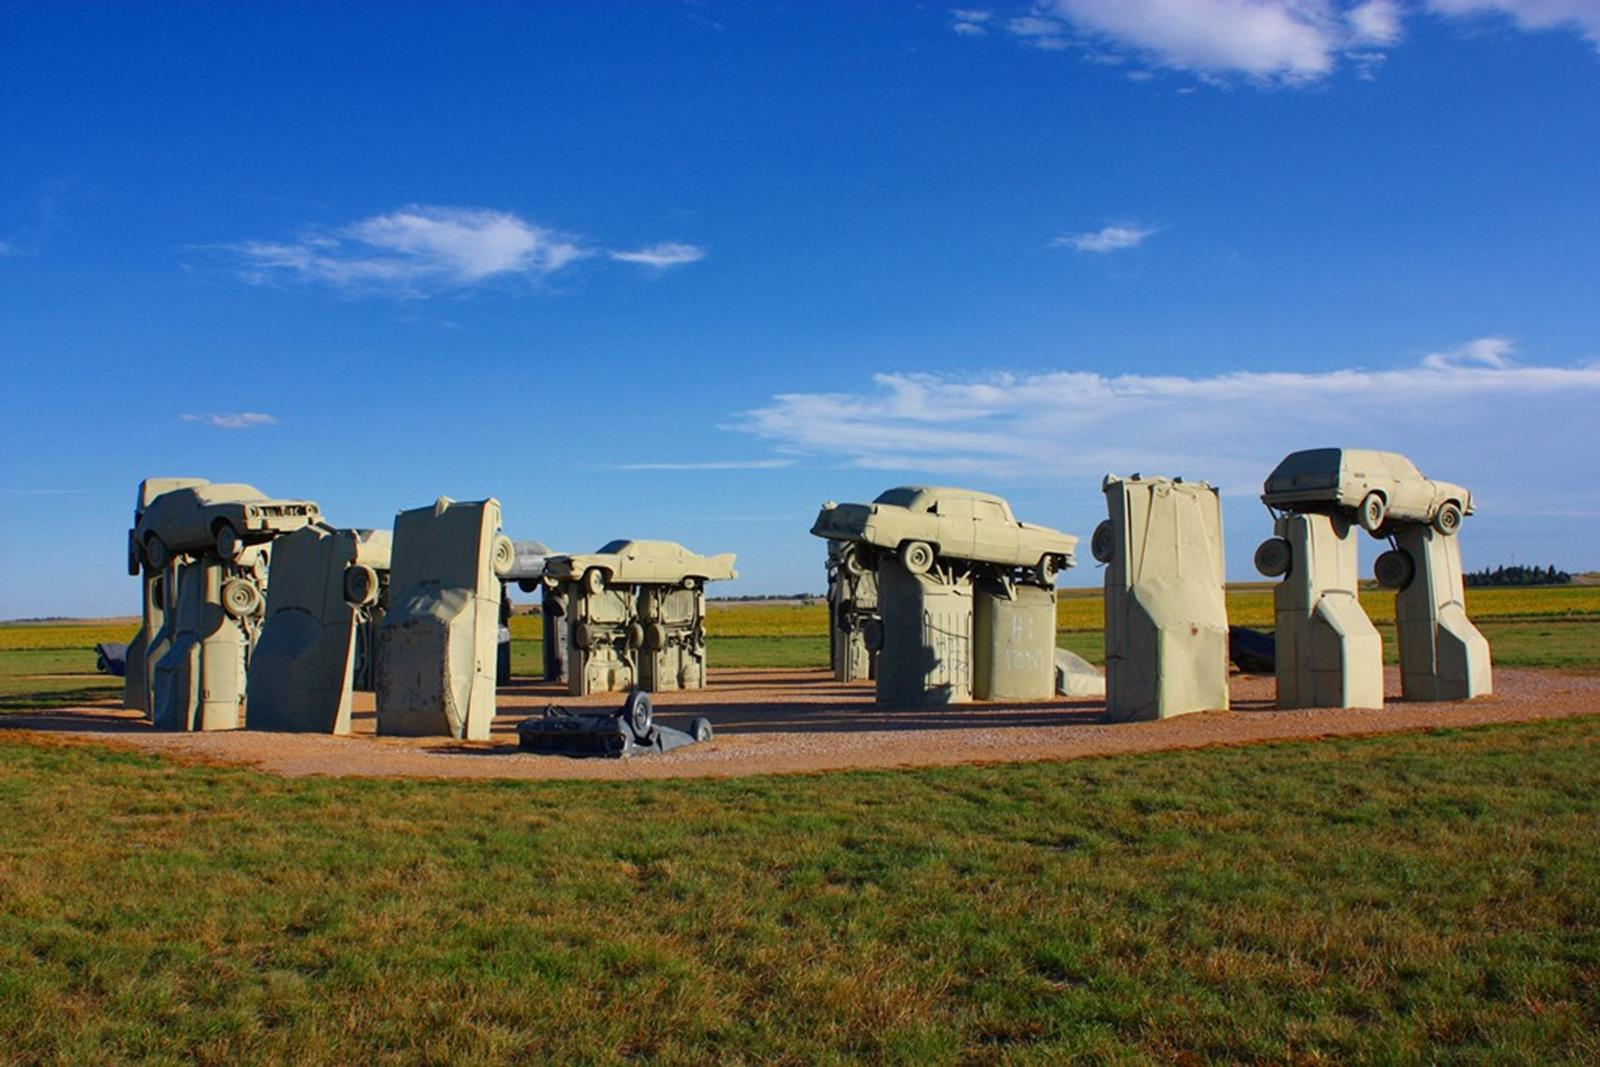 Carhenge sculptures. Credit: Jacob Kamholz at en.wikipedia